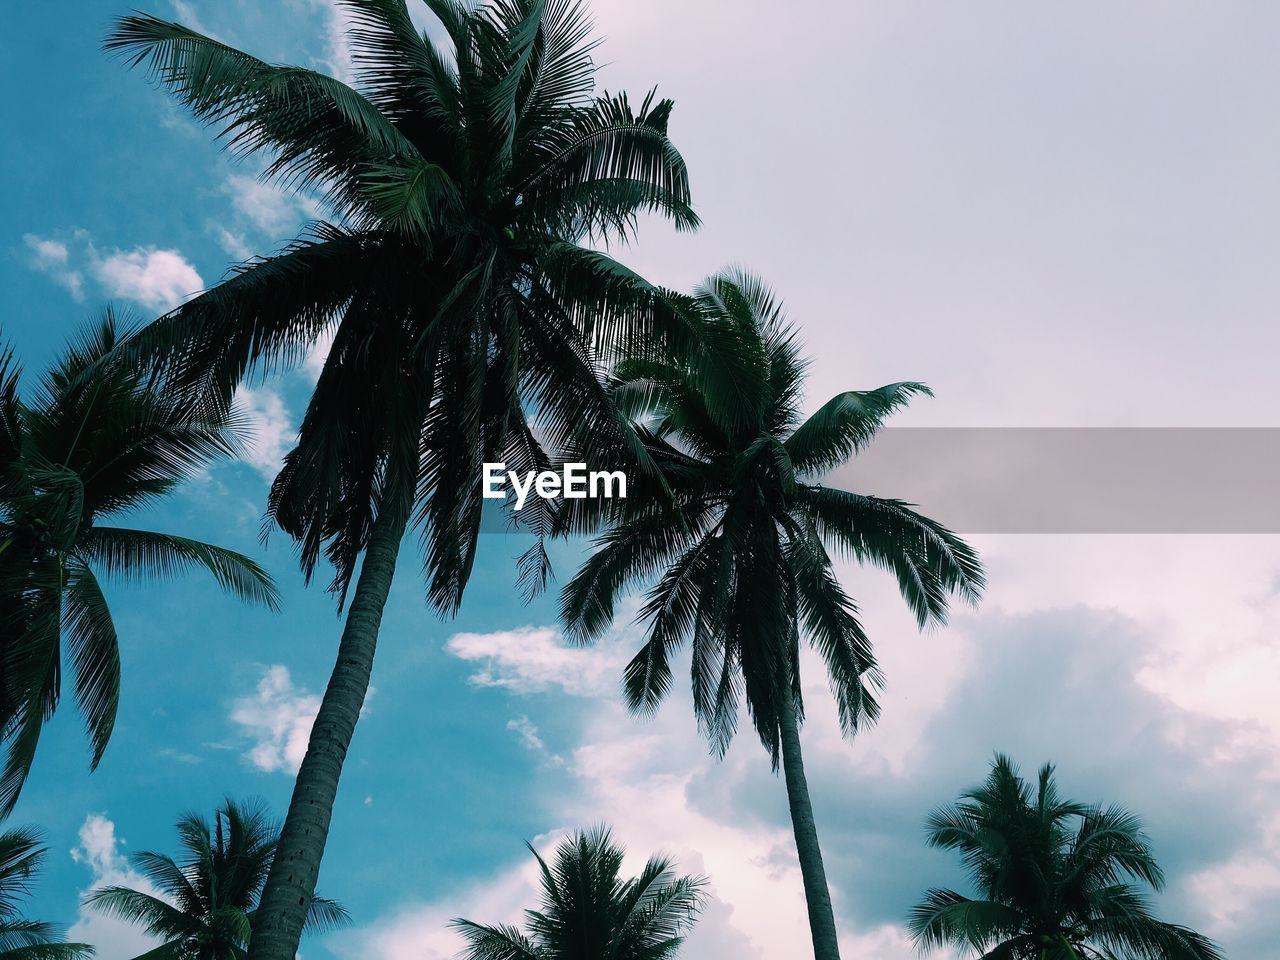 palm tree, tree, low angle view, sky, tree trunk, beauty in nature, nature, palm frond, scenics, tranquility, cloud - sky, no people, growth, outdoors, day, leaf